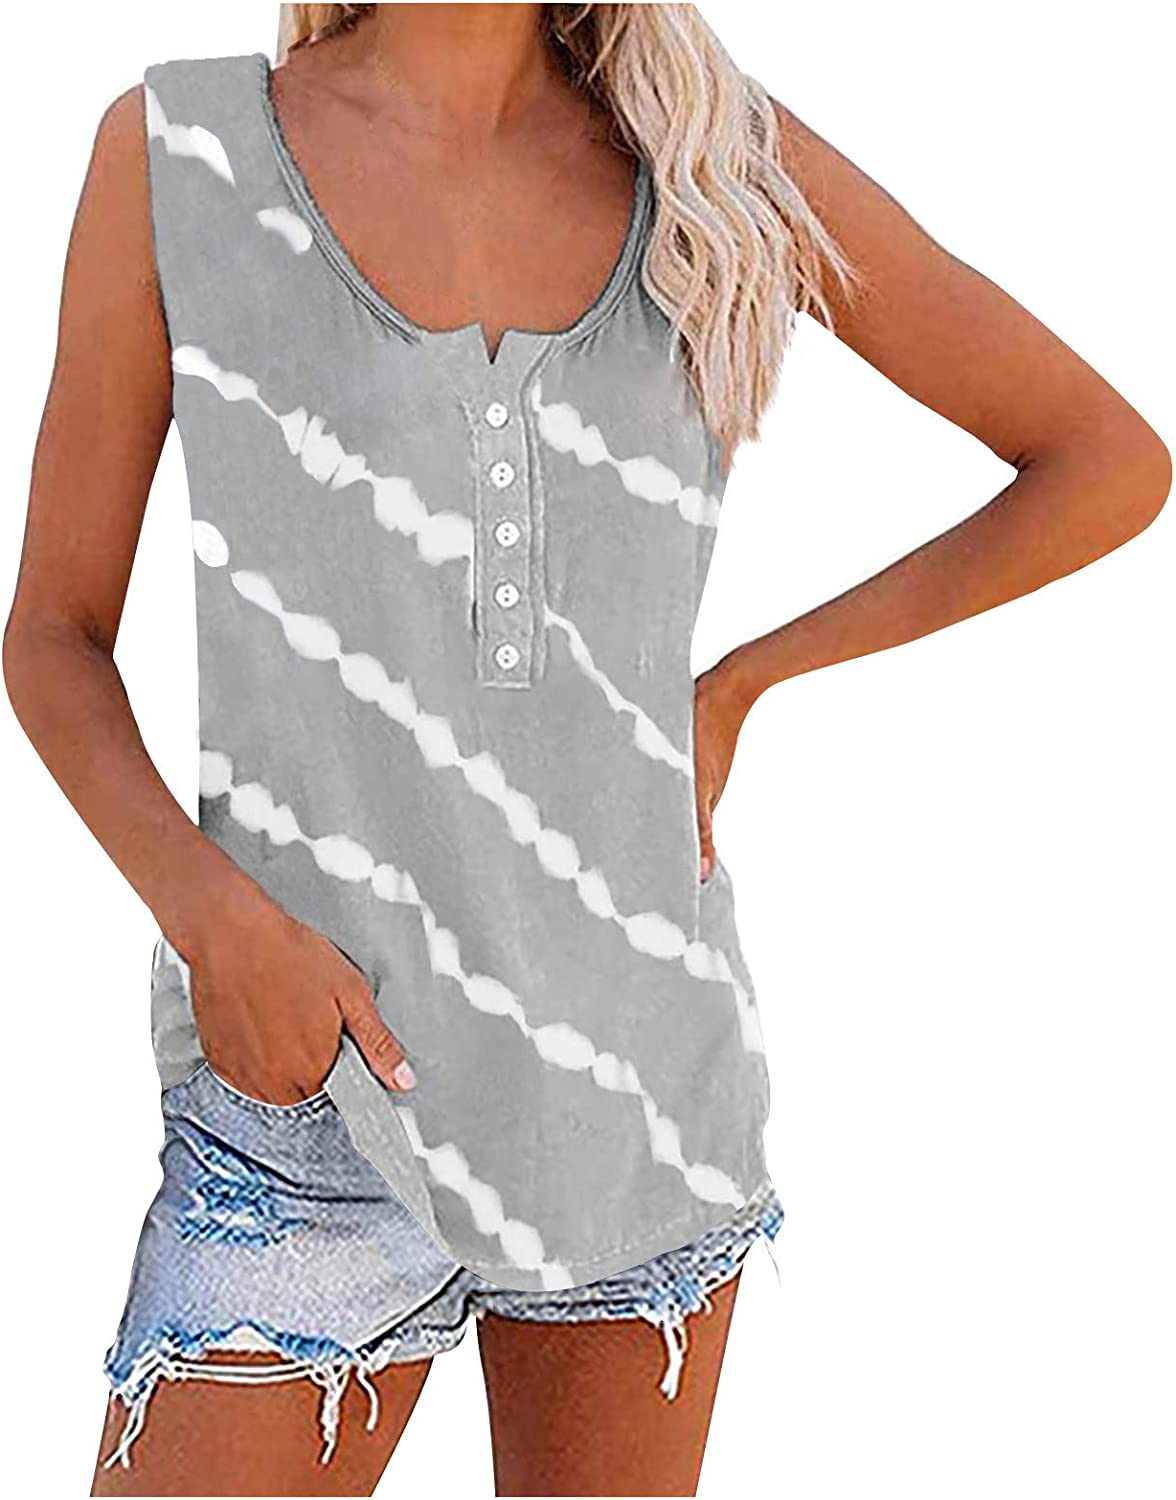 soyienma Women Tank Tops, Womens Sleeveless Tops Color Block Casual Tshirts Crewneck Tunic Tees Summer Workout Vest Blouses